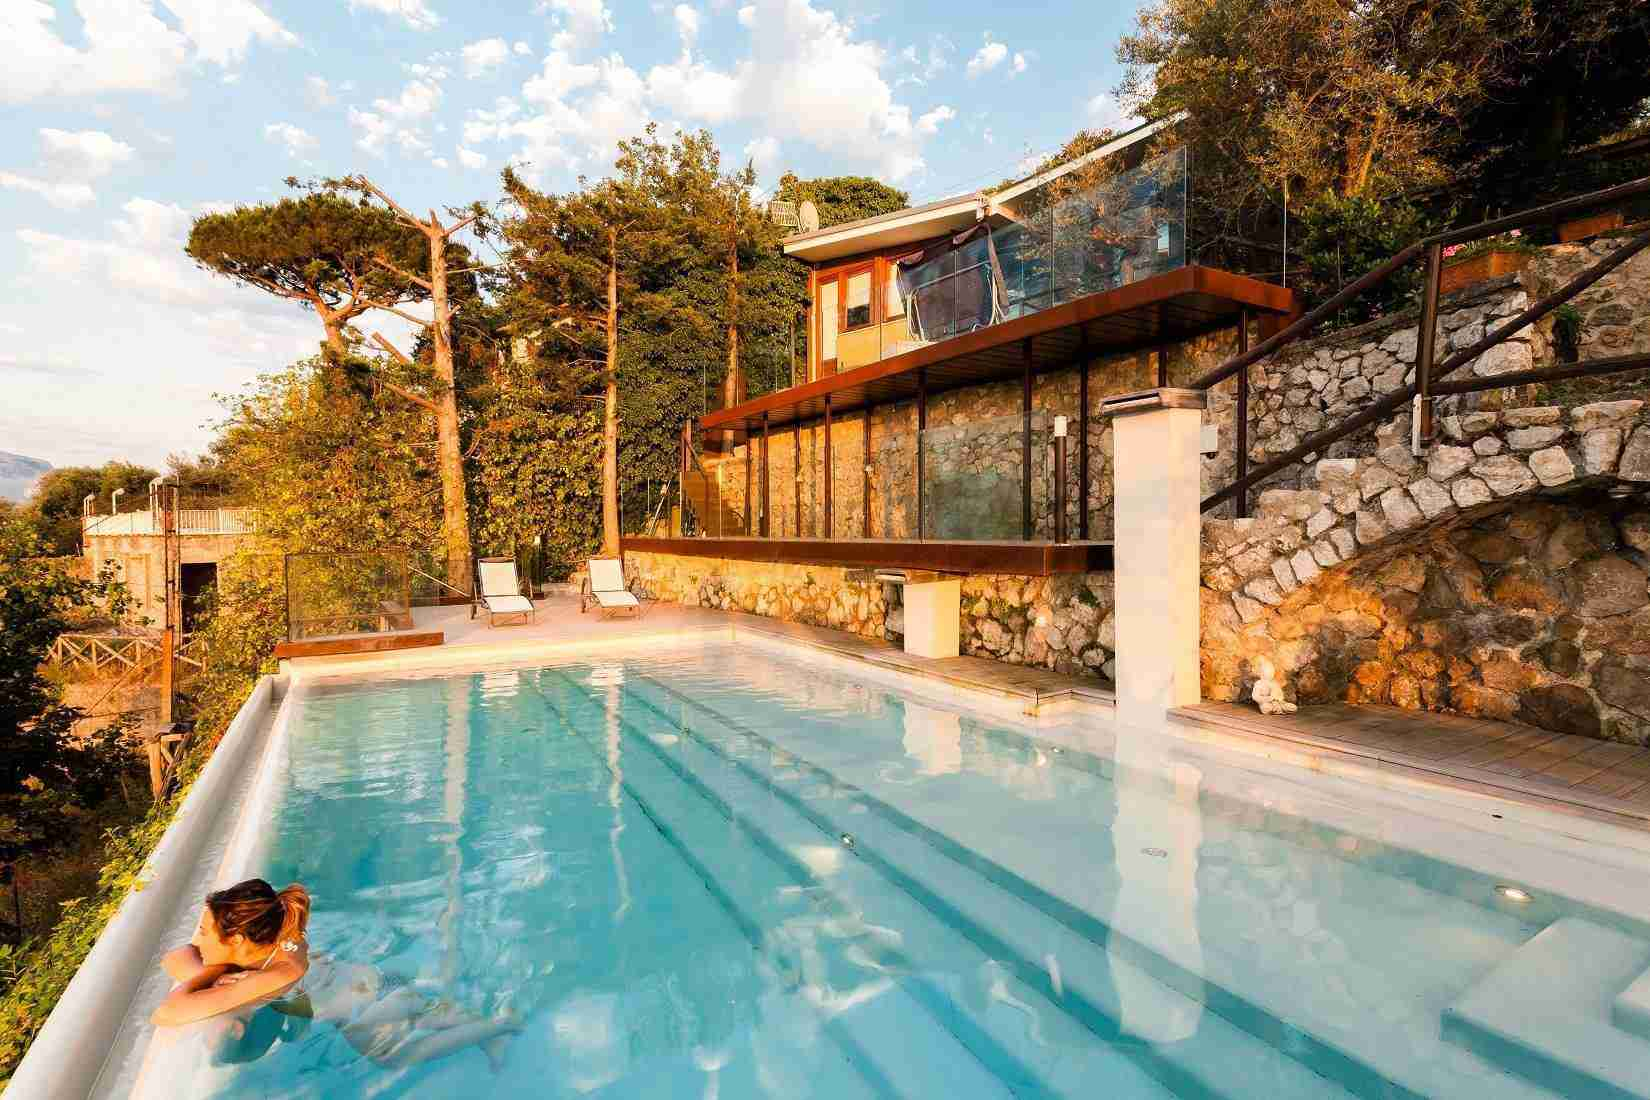 2 Turchese relax pool